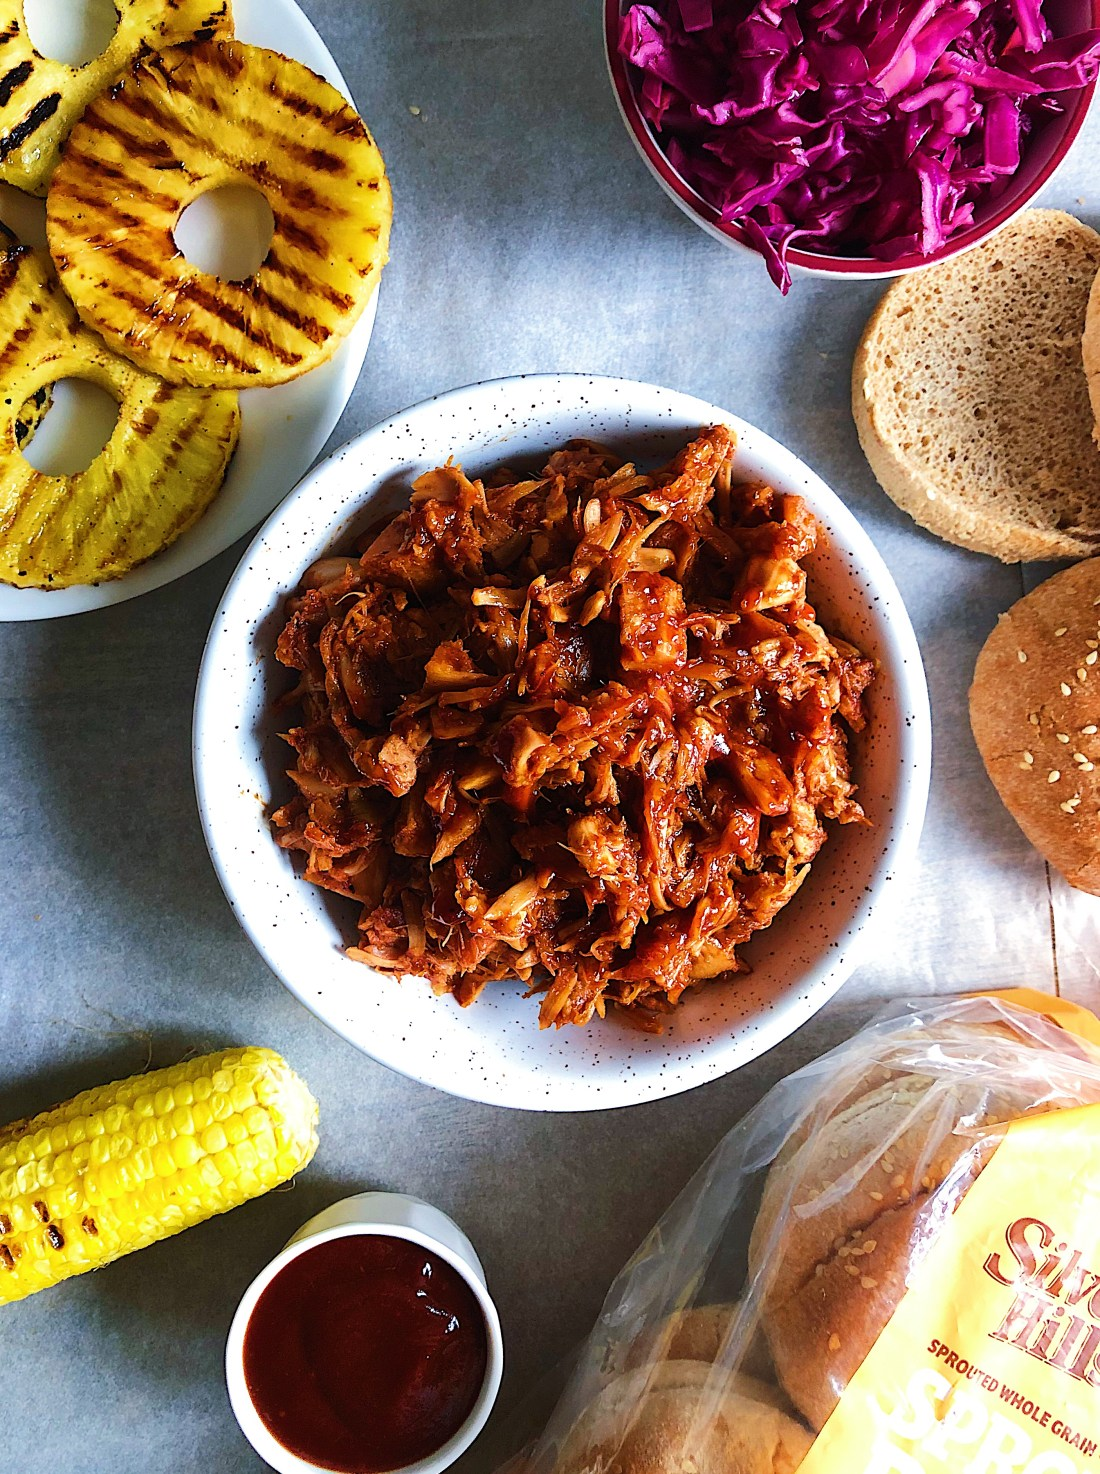 BBQ JACKFRUIT SANDWICH WITH GRILLED PINEAPPLE AND QUICK PICKLED CABBAGE